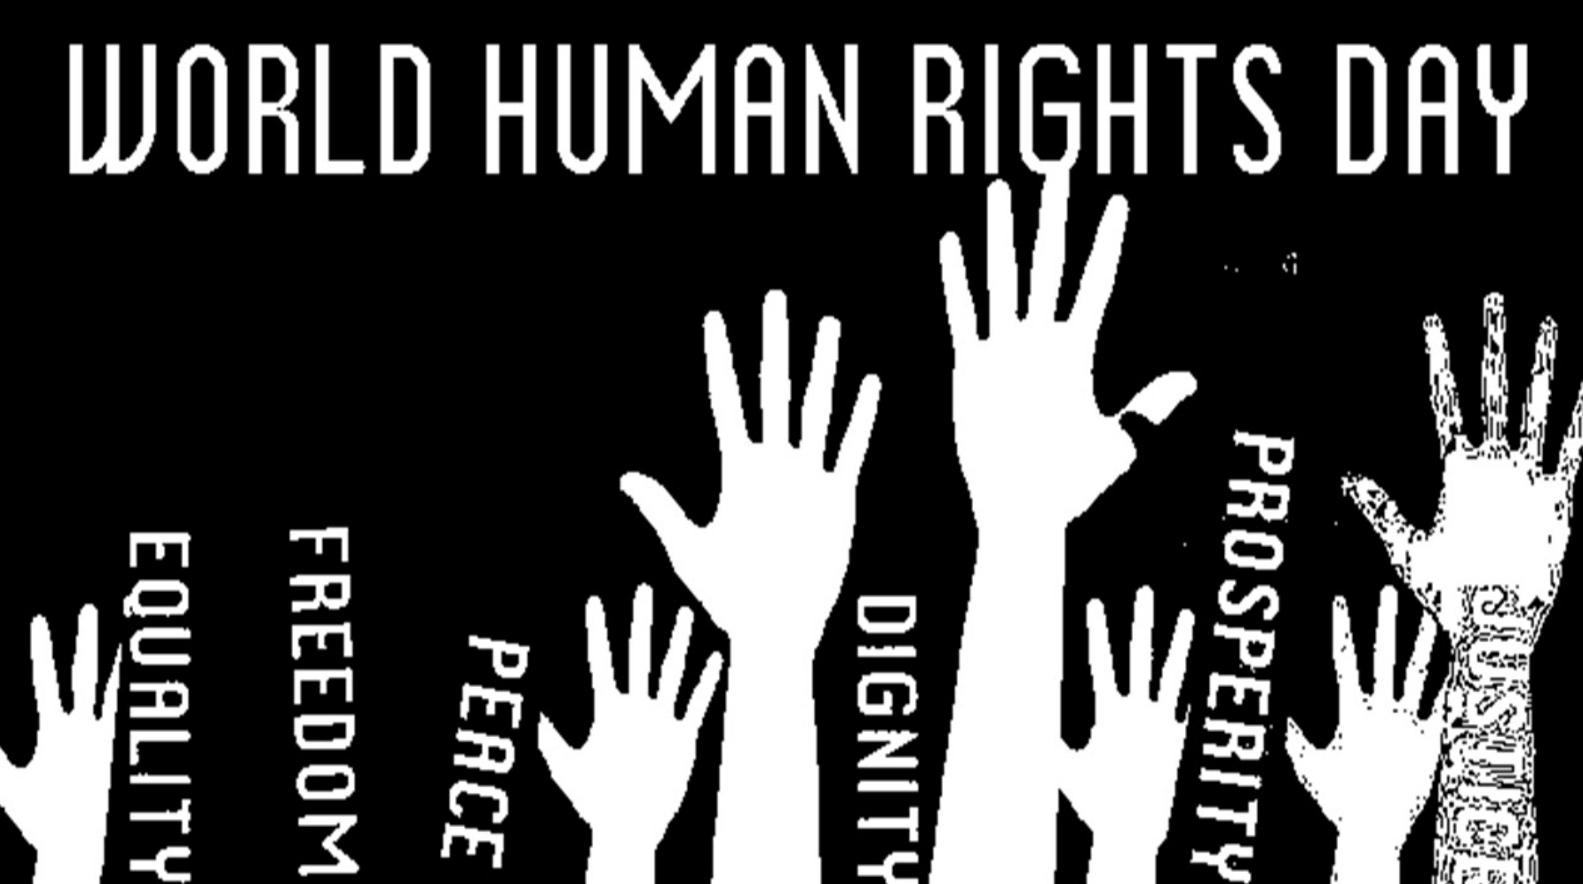 Music and Human Rights Online Video